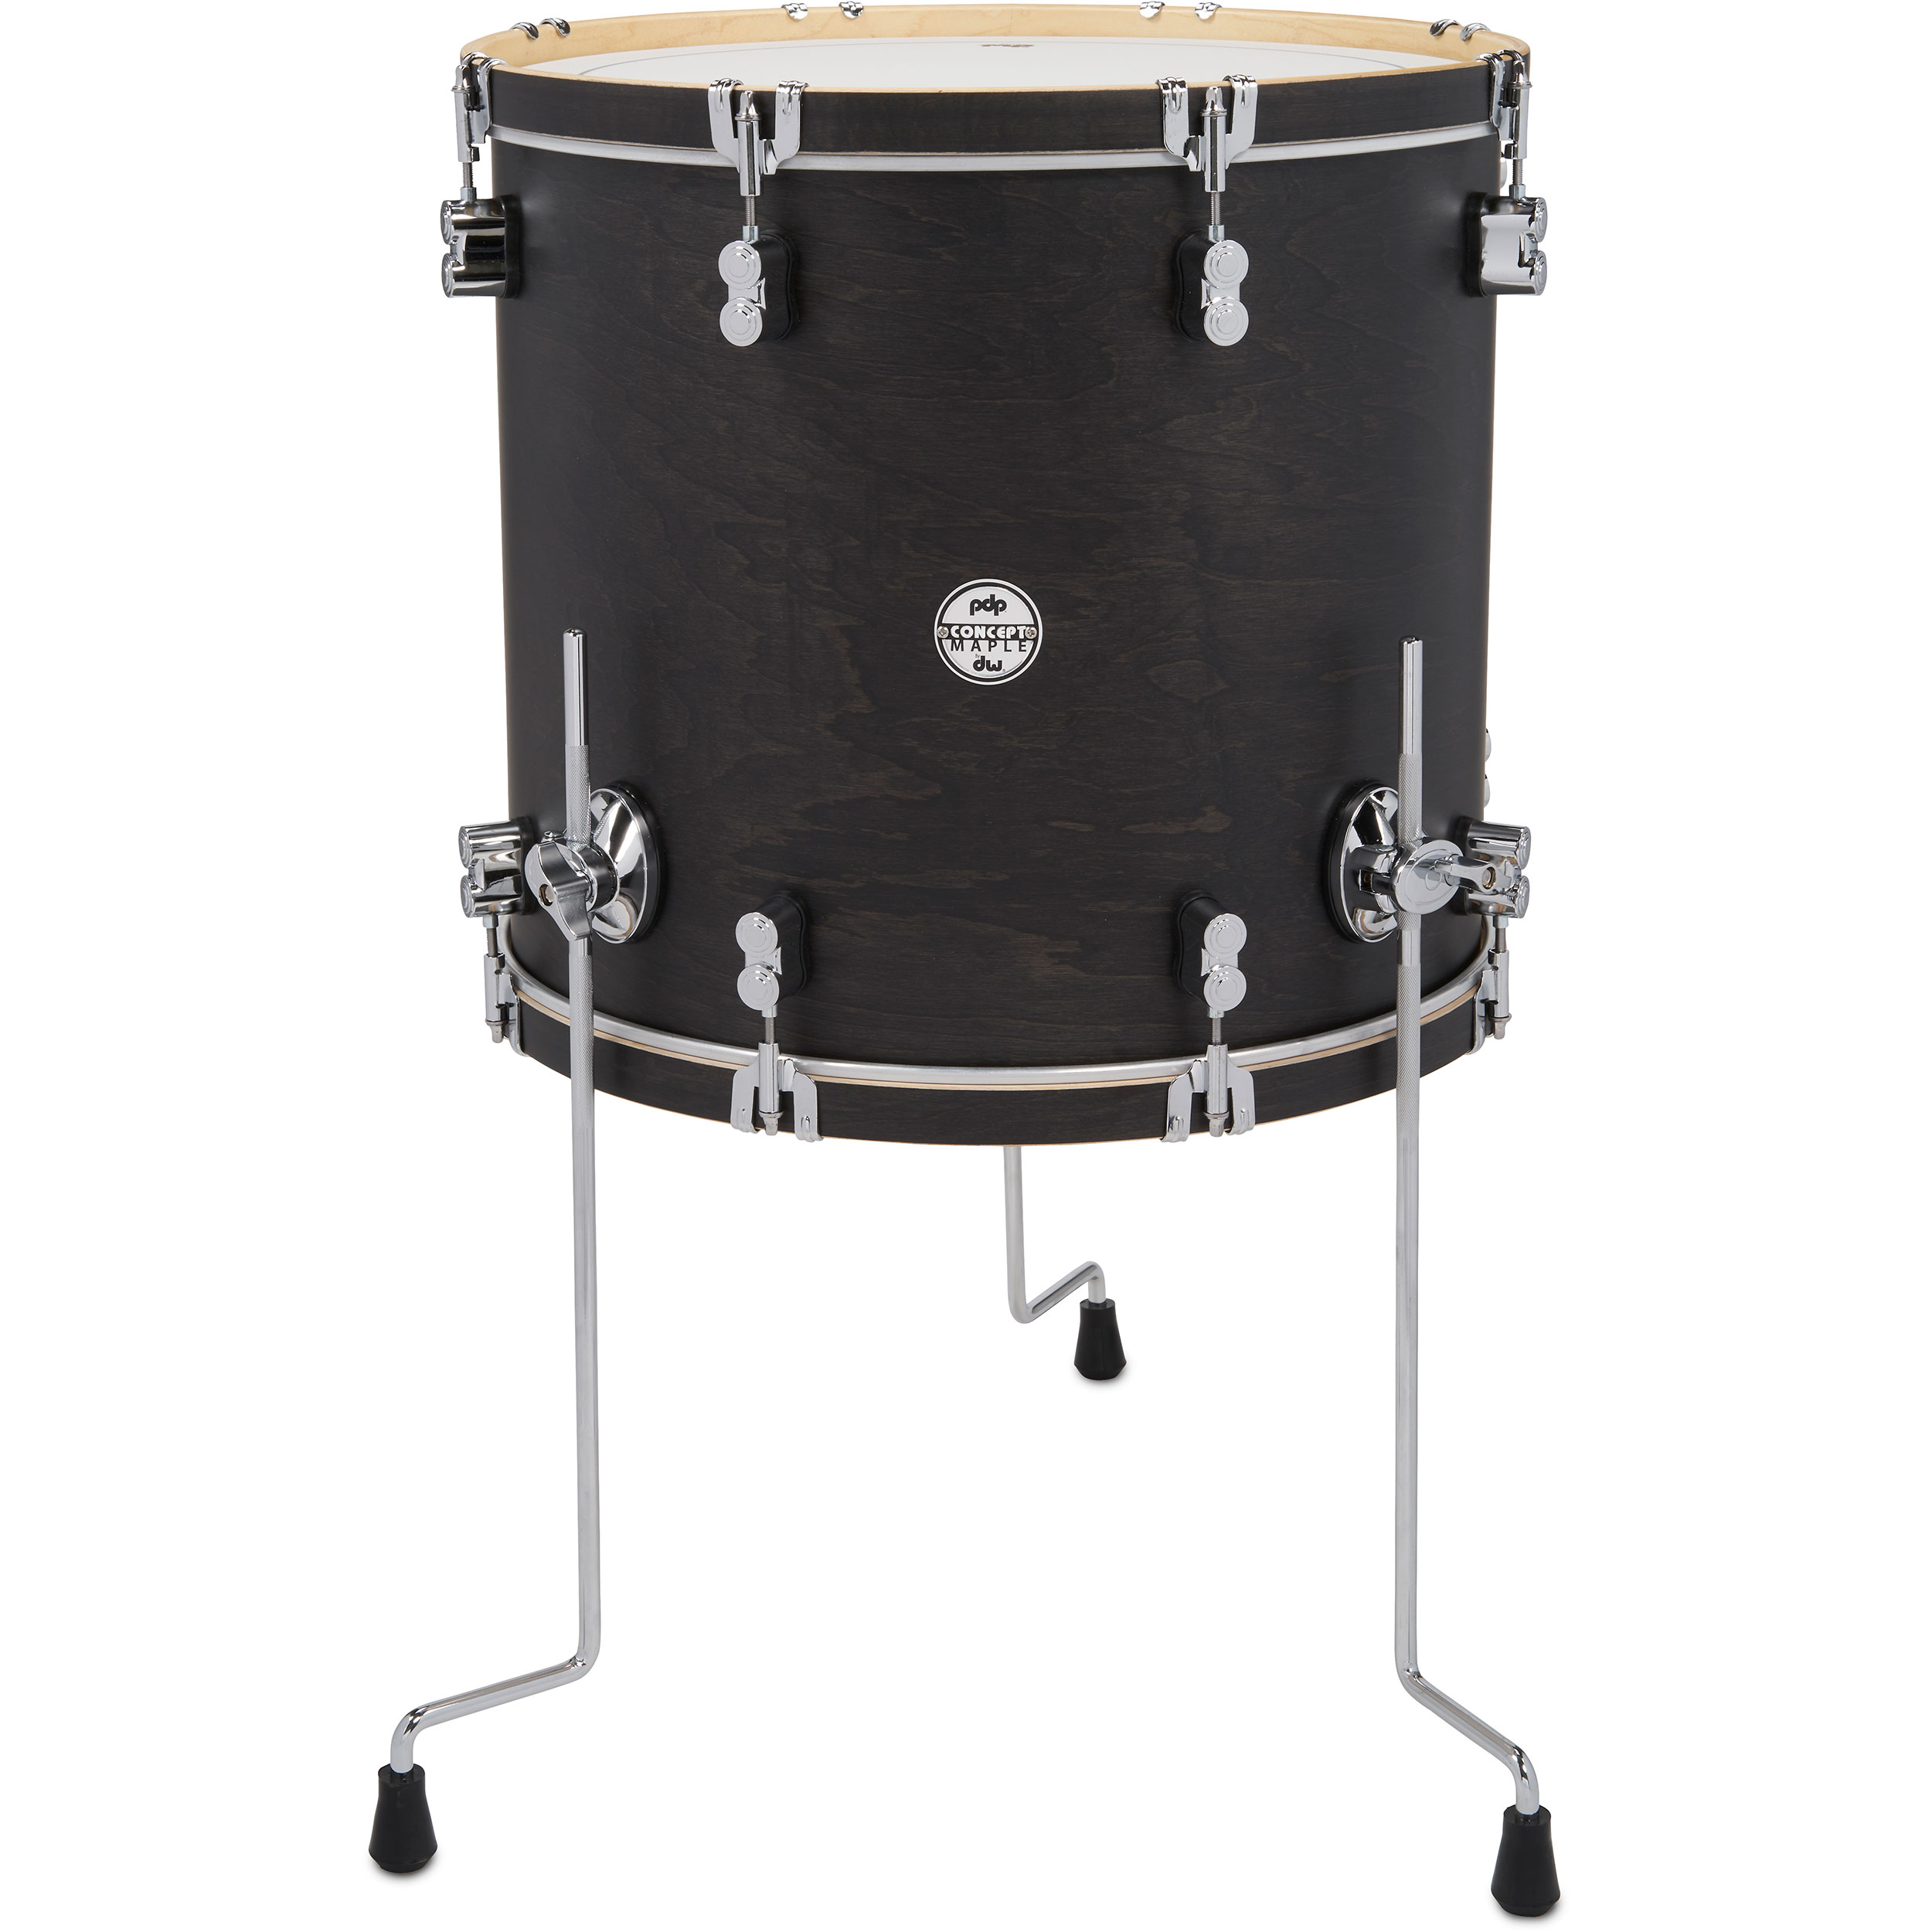 "PDP 16"" x 18"" Concept Maple Classic Floor Tom"